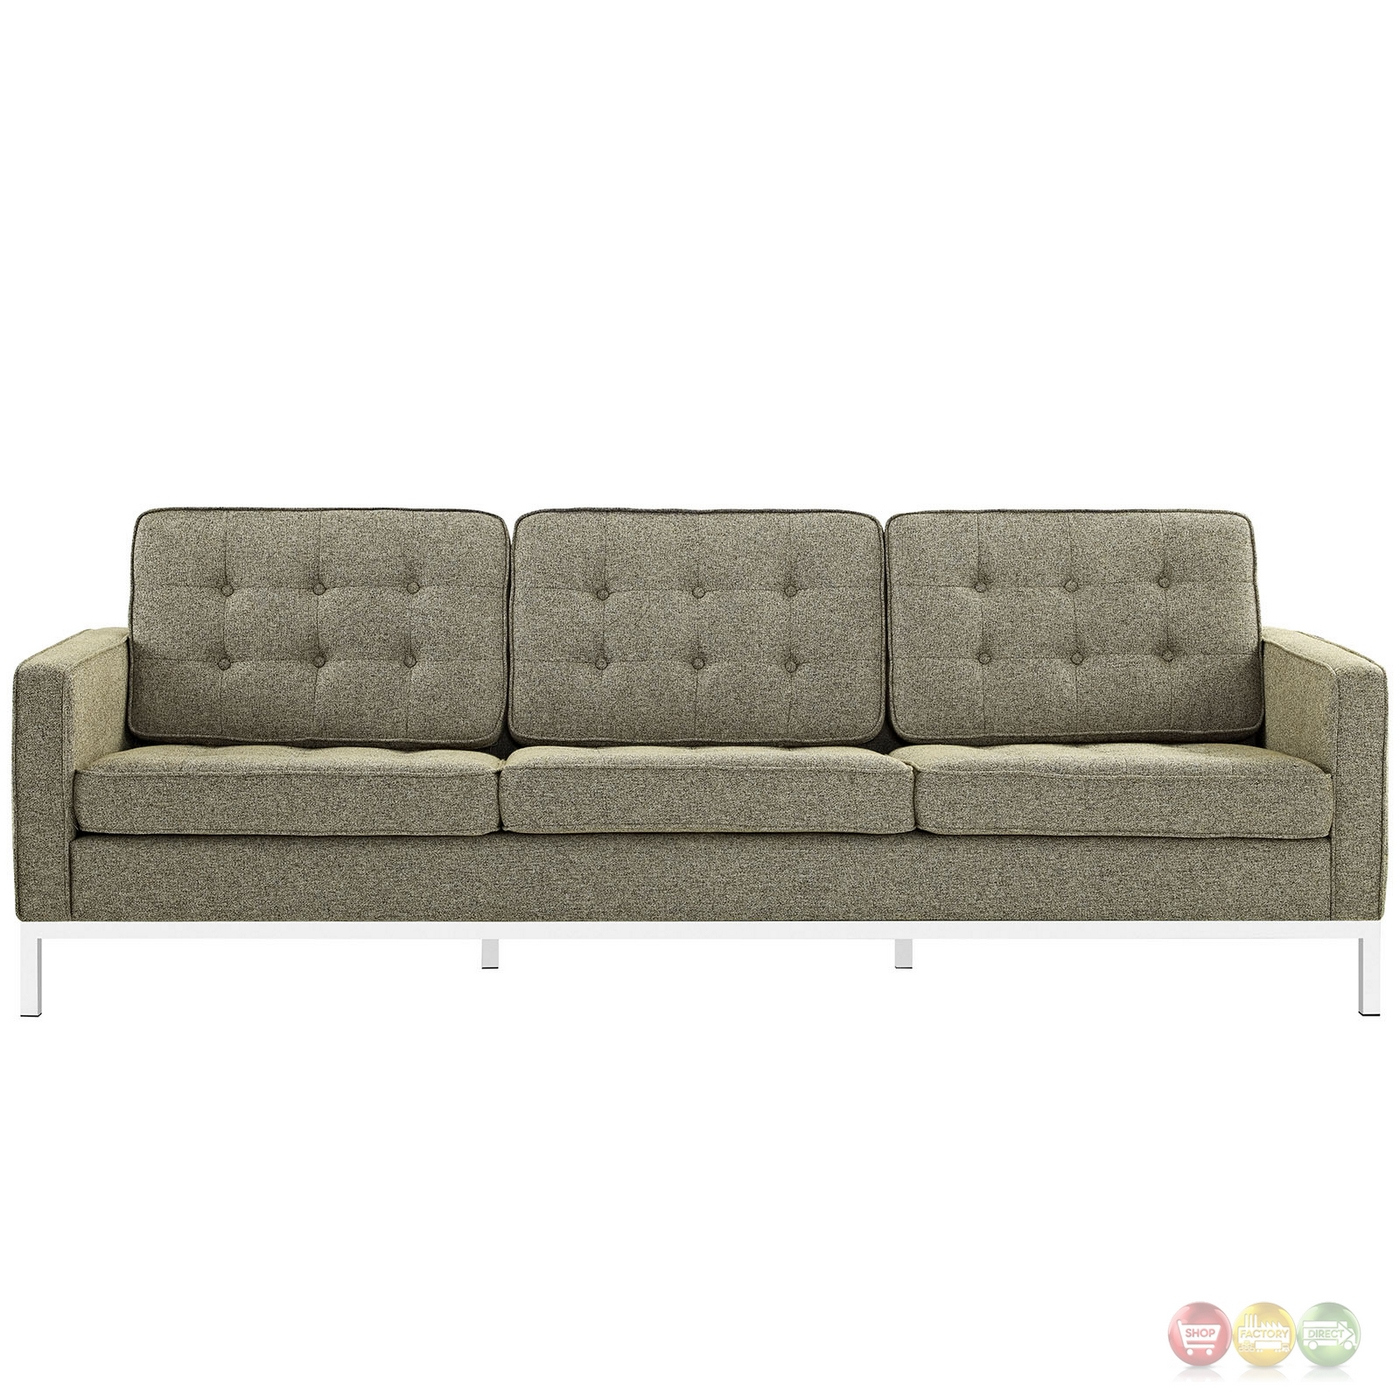 oatmeal sofa set sofas for small rooms ideas mid century modern loft 2pc button tufted and loveseat